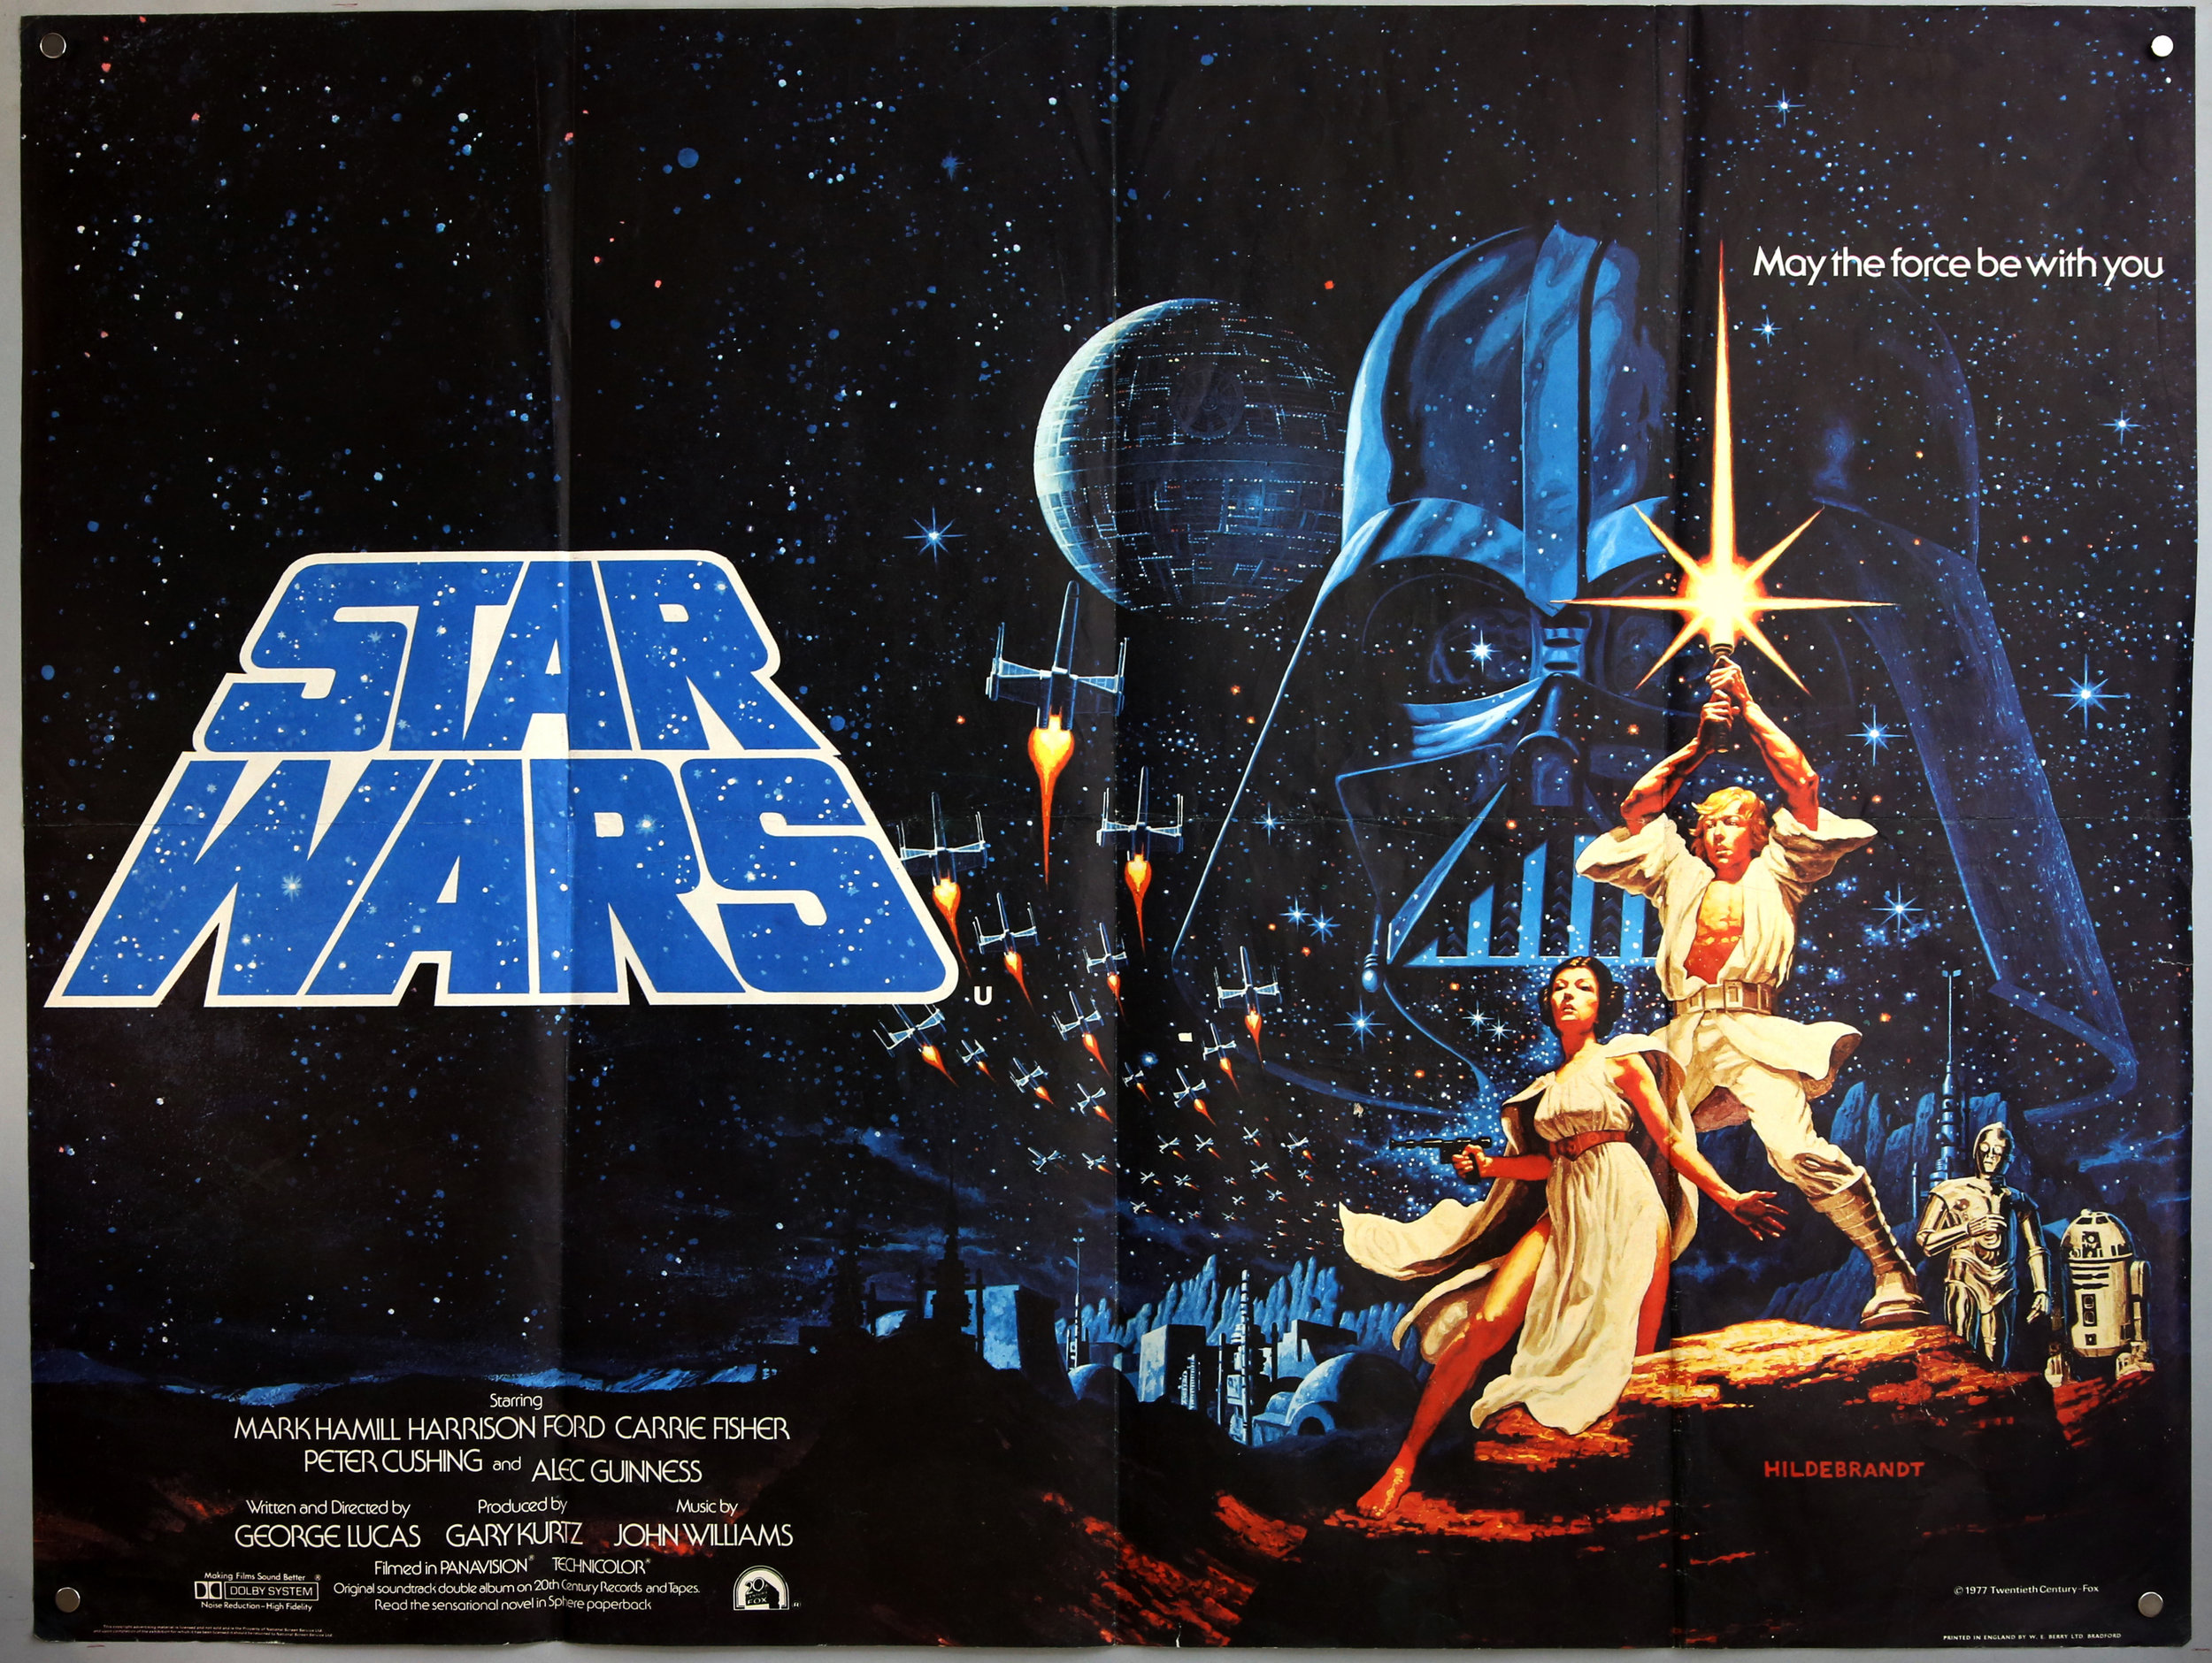 Star Wars poster – estimate £2500-3000